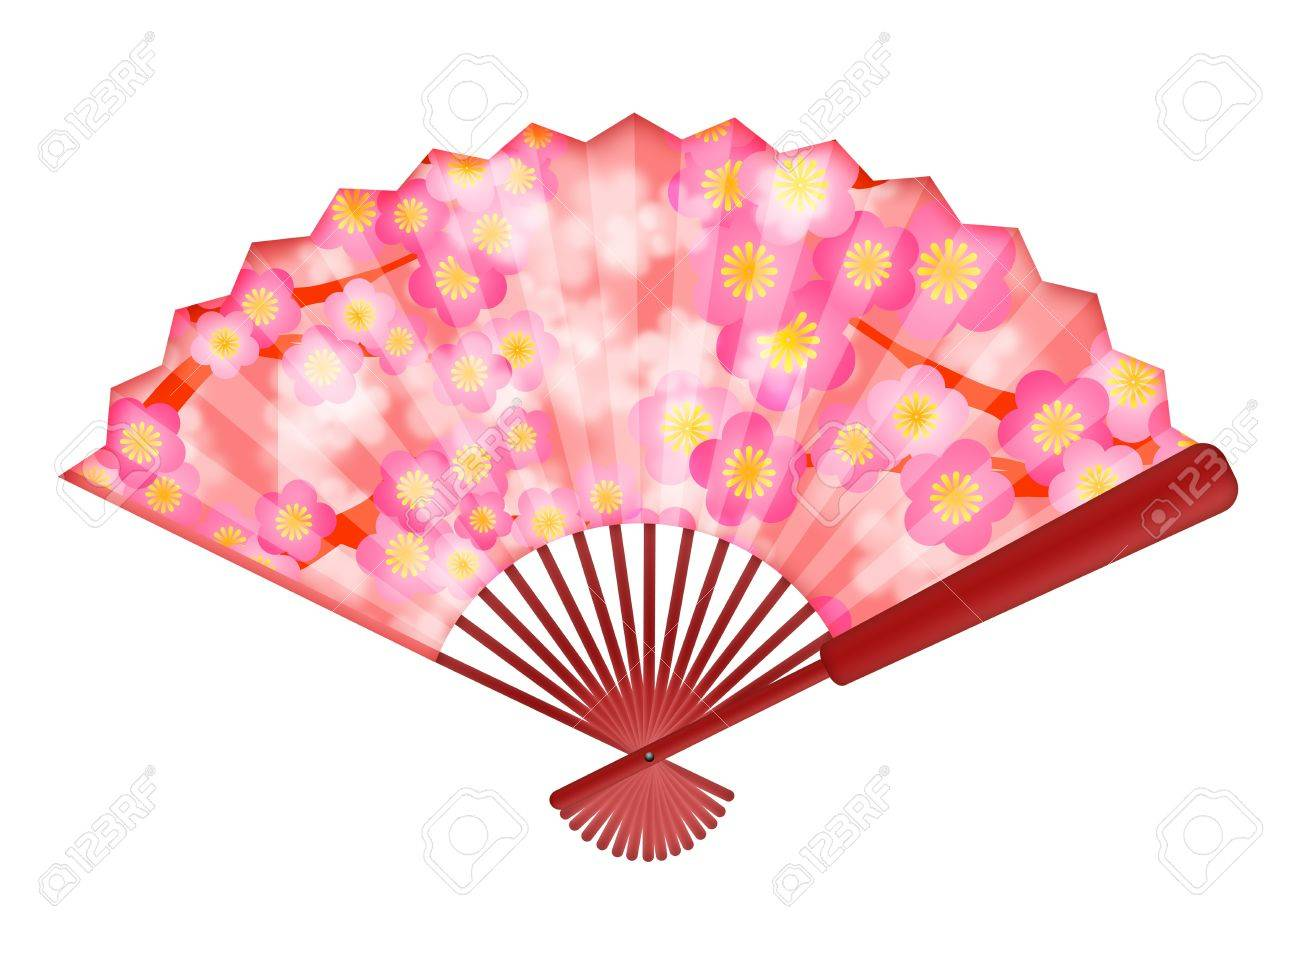 Chinese Folding Fan with Cherry Blossom Flowers in Spring Illustration Isolated on White Background Stock Photo - 11585755